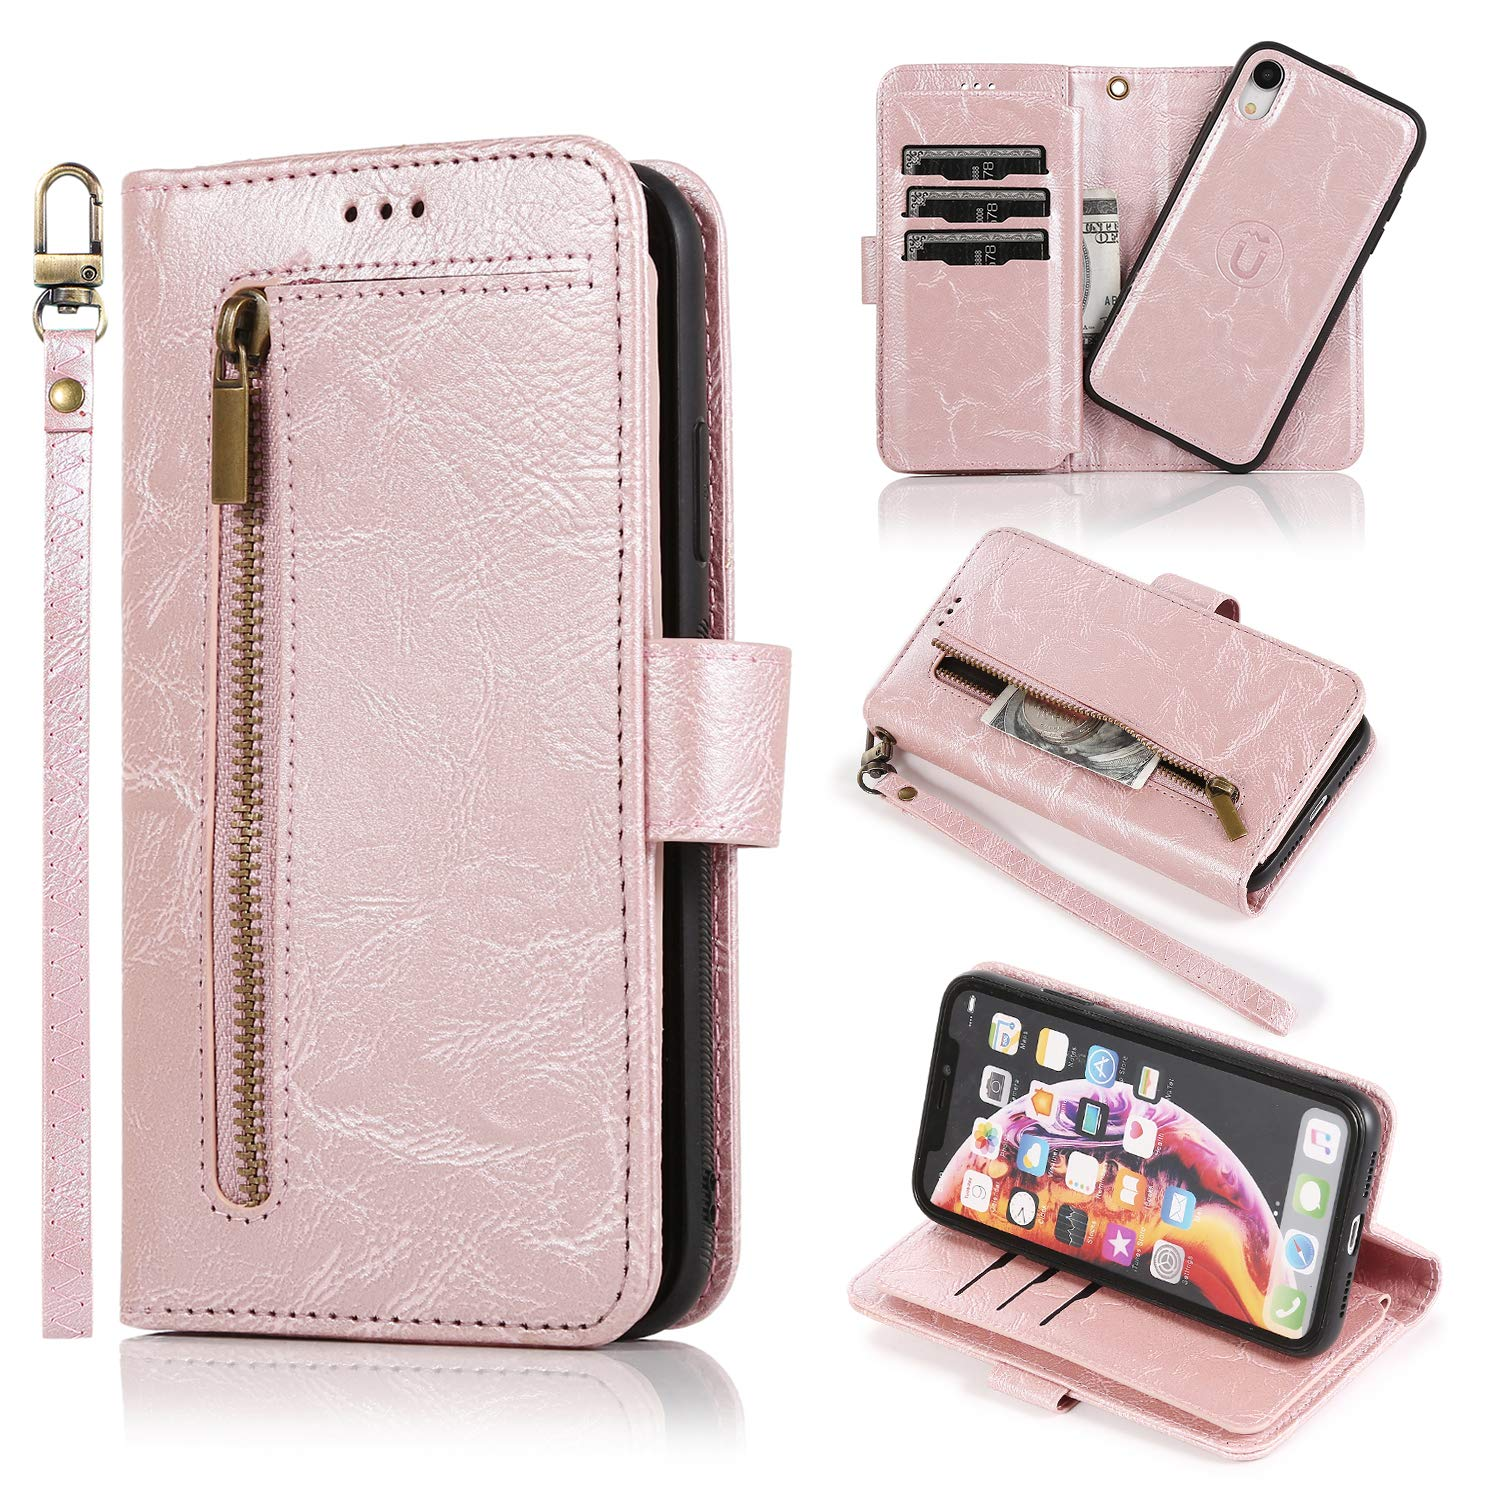 ZCDAYE 2-in-1 Zipper Wallet Case for iPhone XR,Premium PU Leather Magnetic Detachable Slim Flip Case Cover with 9 Card Slots & Wrist Strap for iPhone XR - Rose Gold